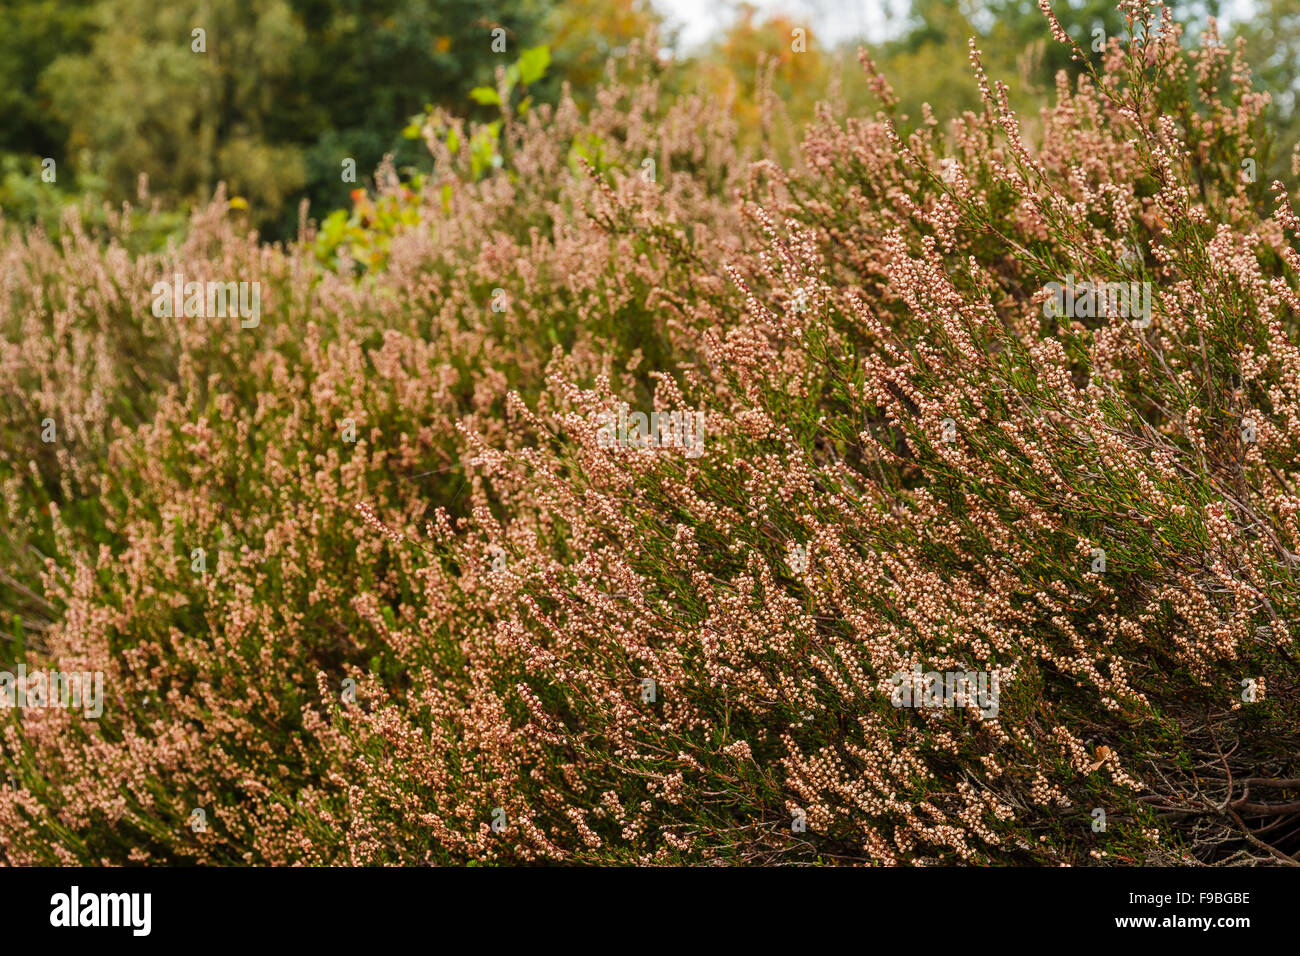 Heath vegetation in autumn after blooming. Beautiful pink colors remain in the autumn sun. Drenthe, The Netherlands. Stock Photo